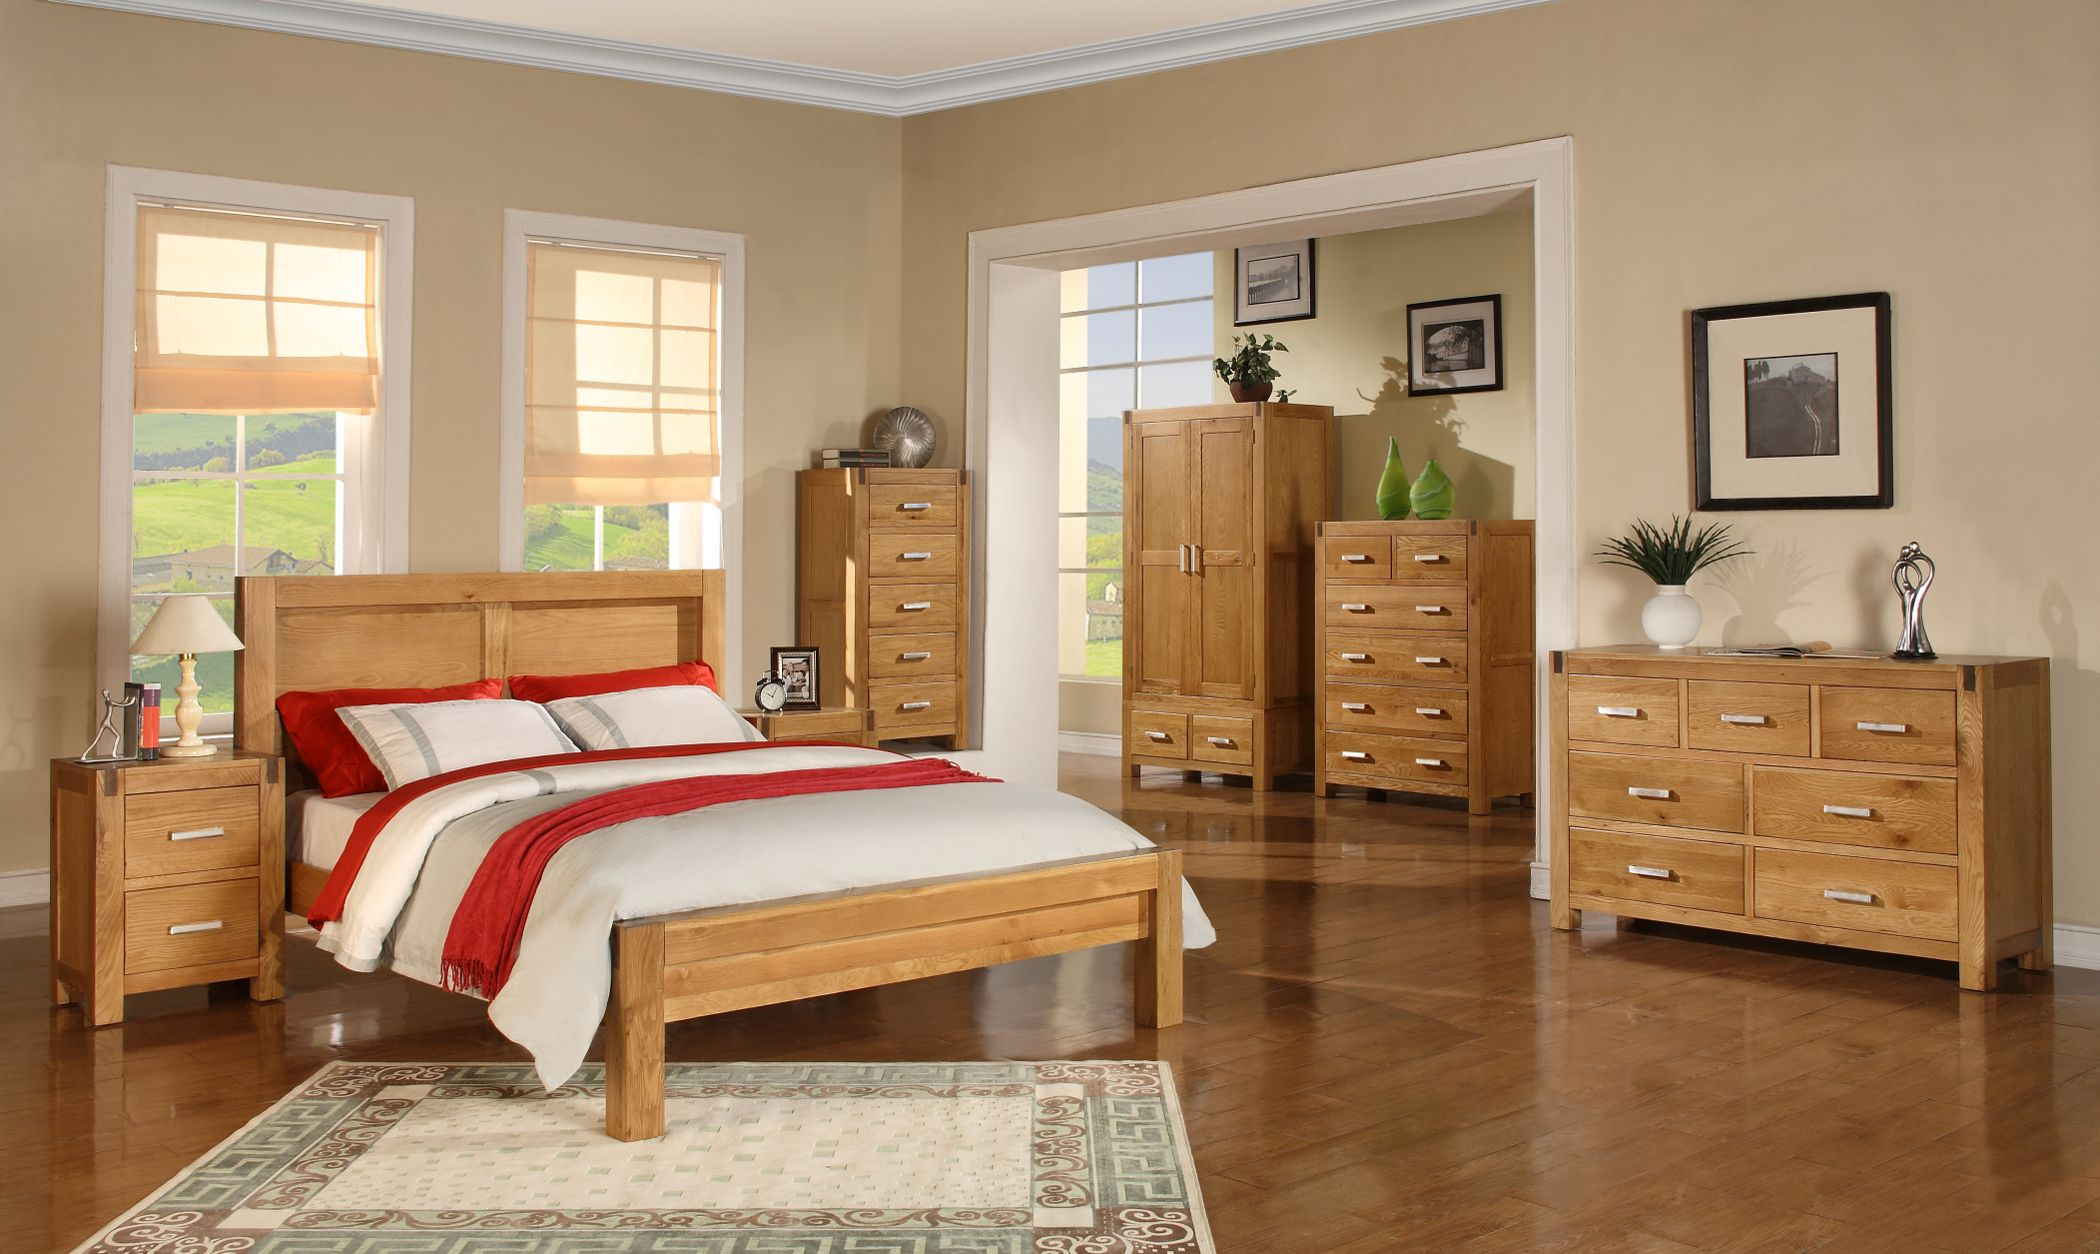 Bedroom Decorating Ideas With Pine Furniture oak bedroom furniture | bedroom furniture | pinterest | oak